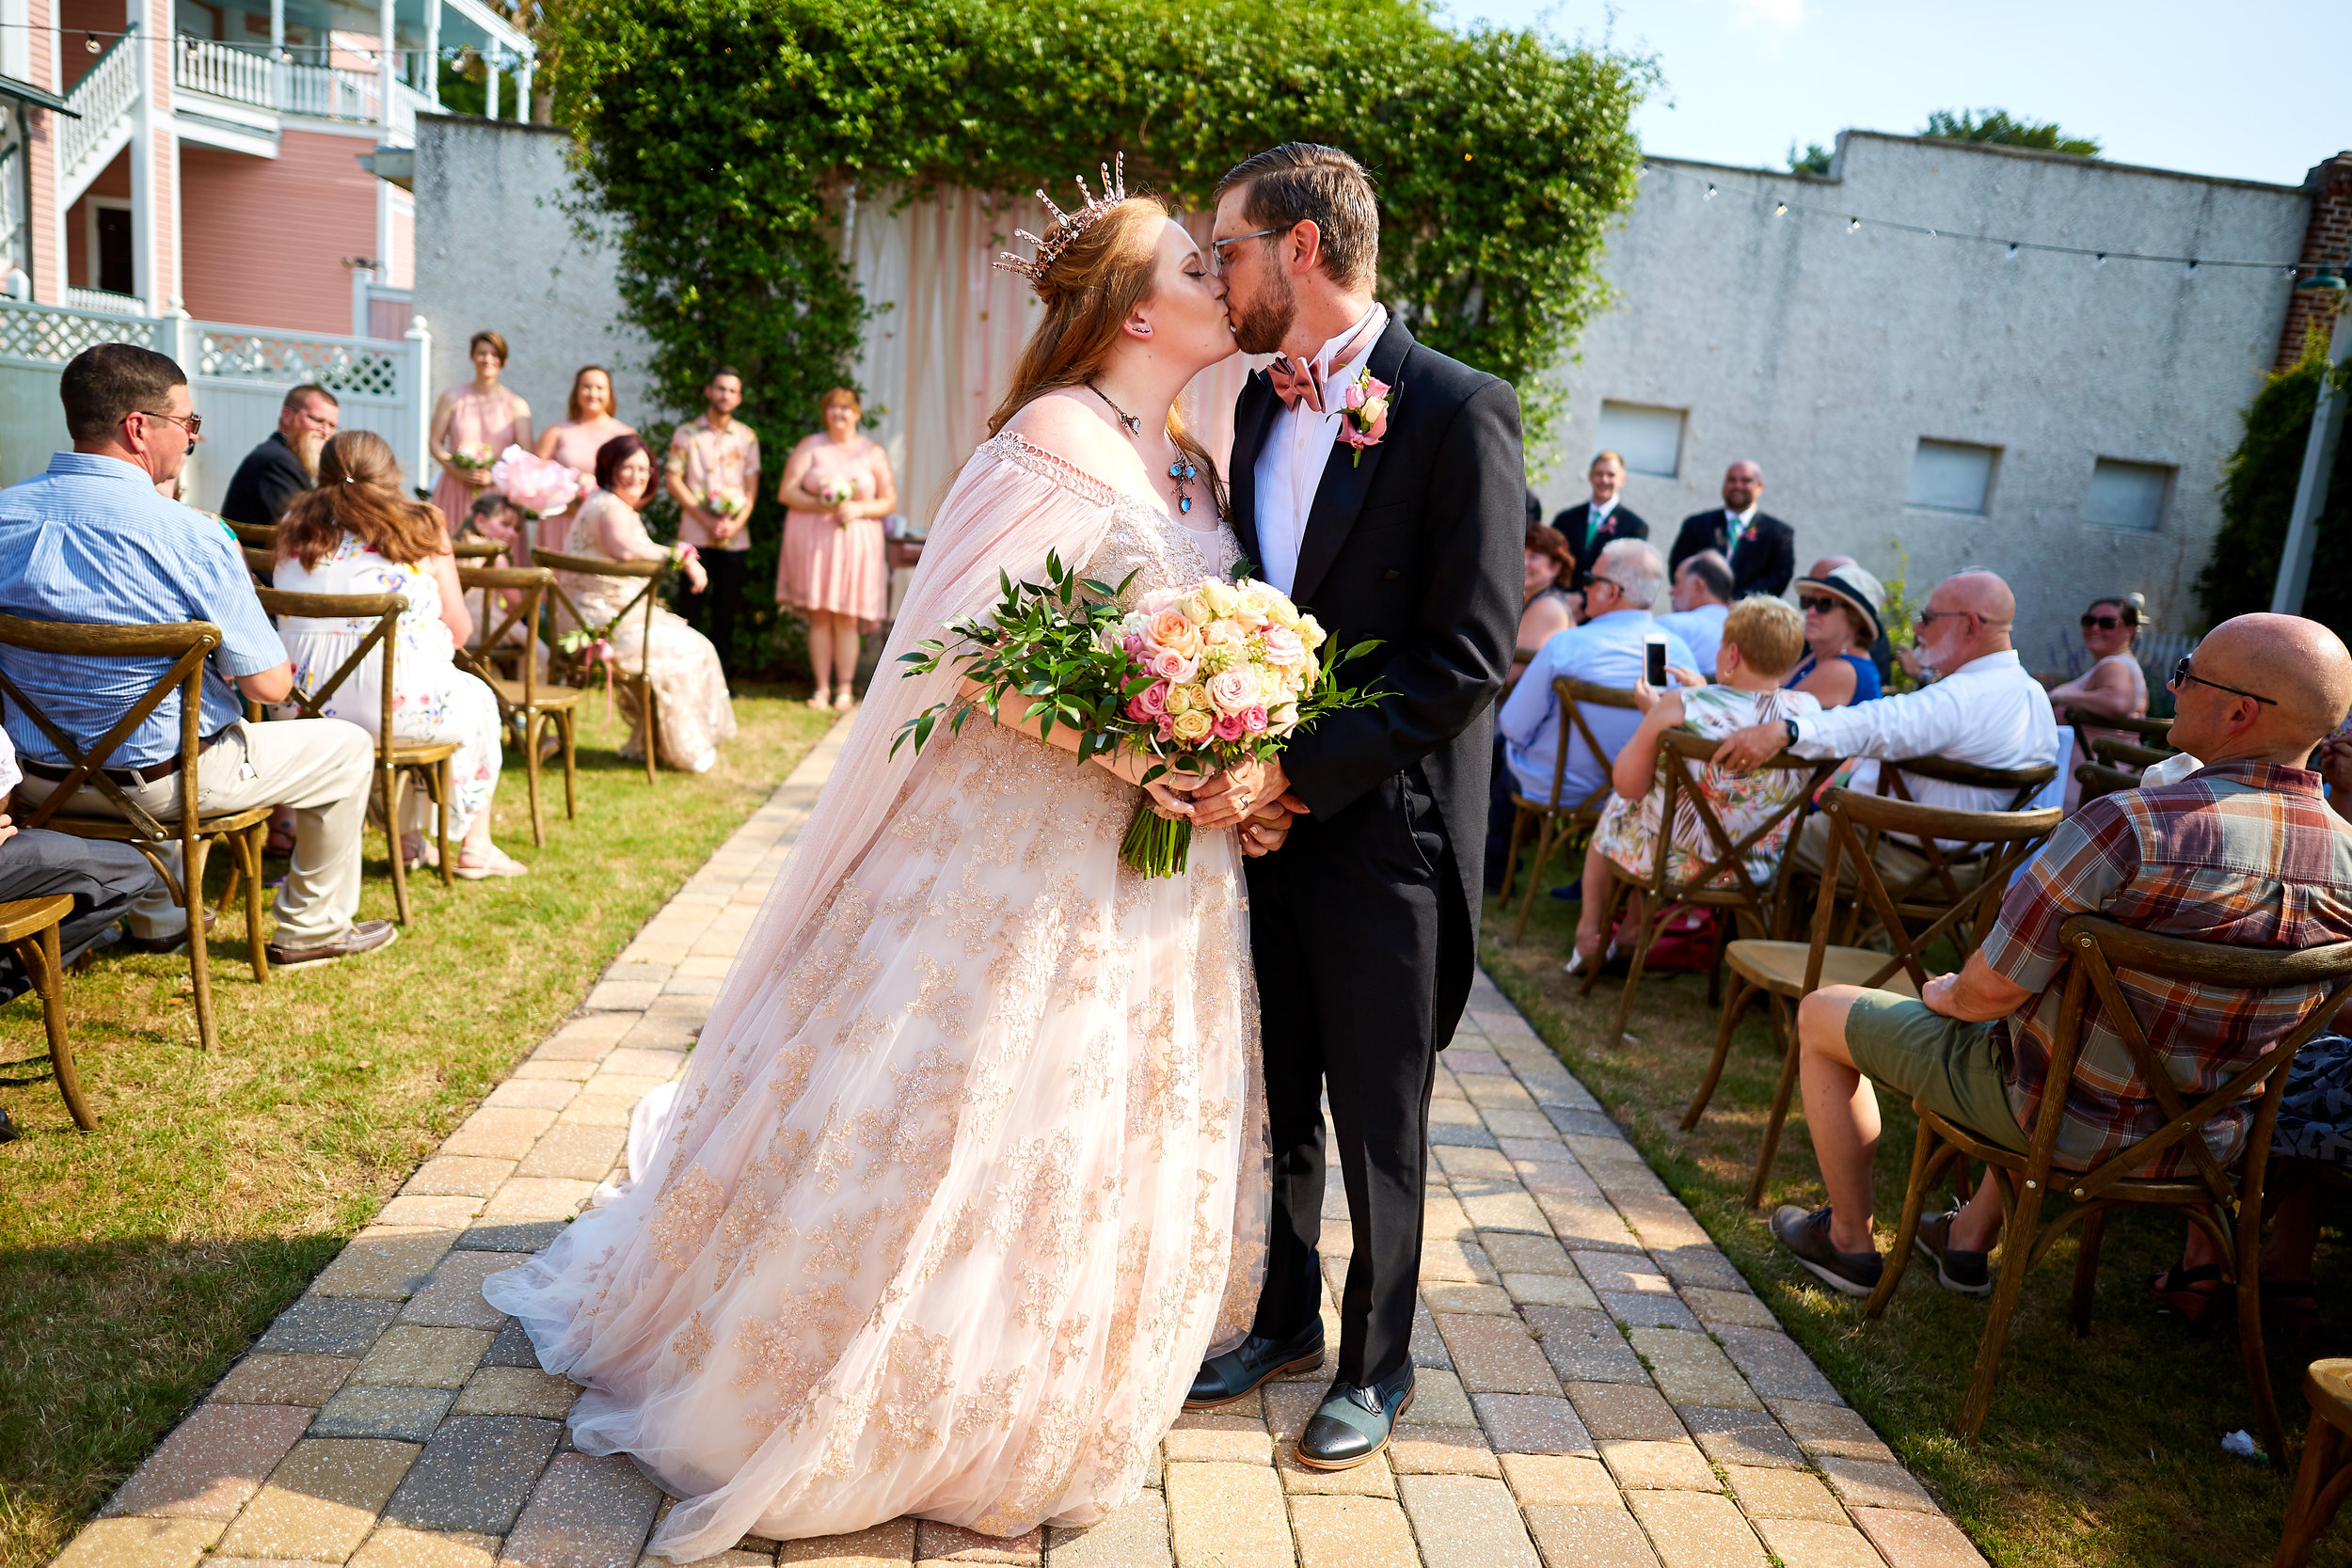 Whimsical, offbeat bride and groom kiss after their Tabbey Garden wedding ceremony, at the Beaufort Inn, in Beaufort, South Carolina.